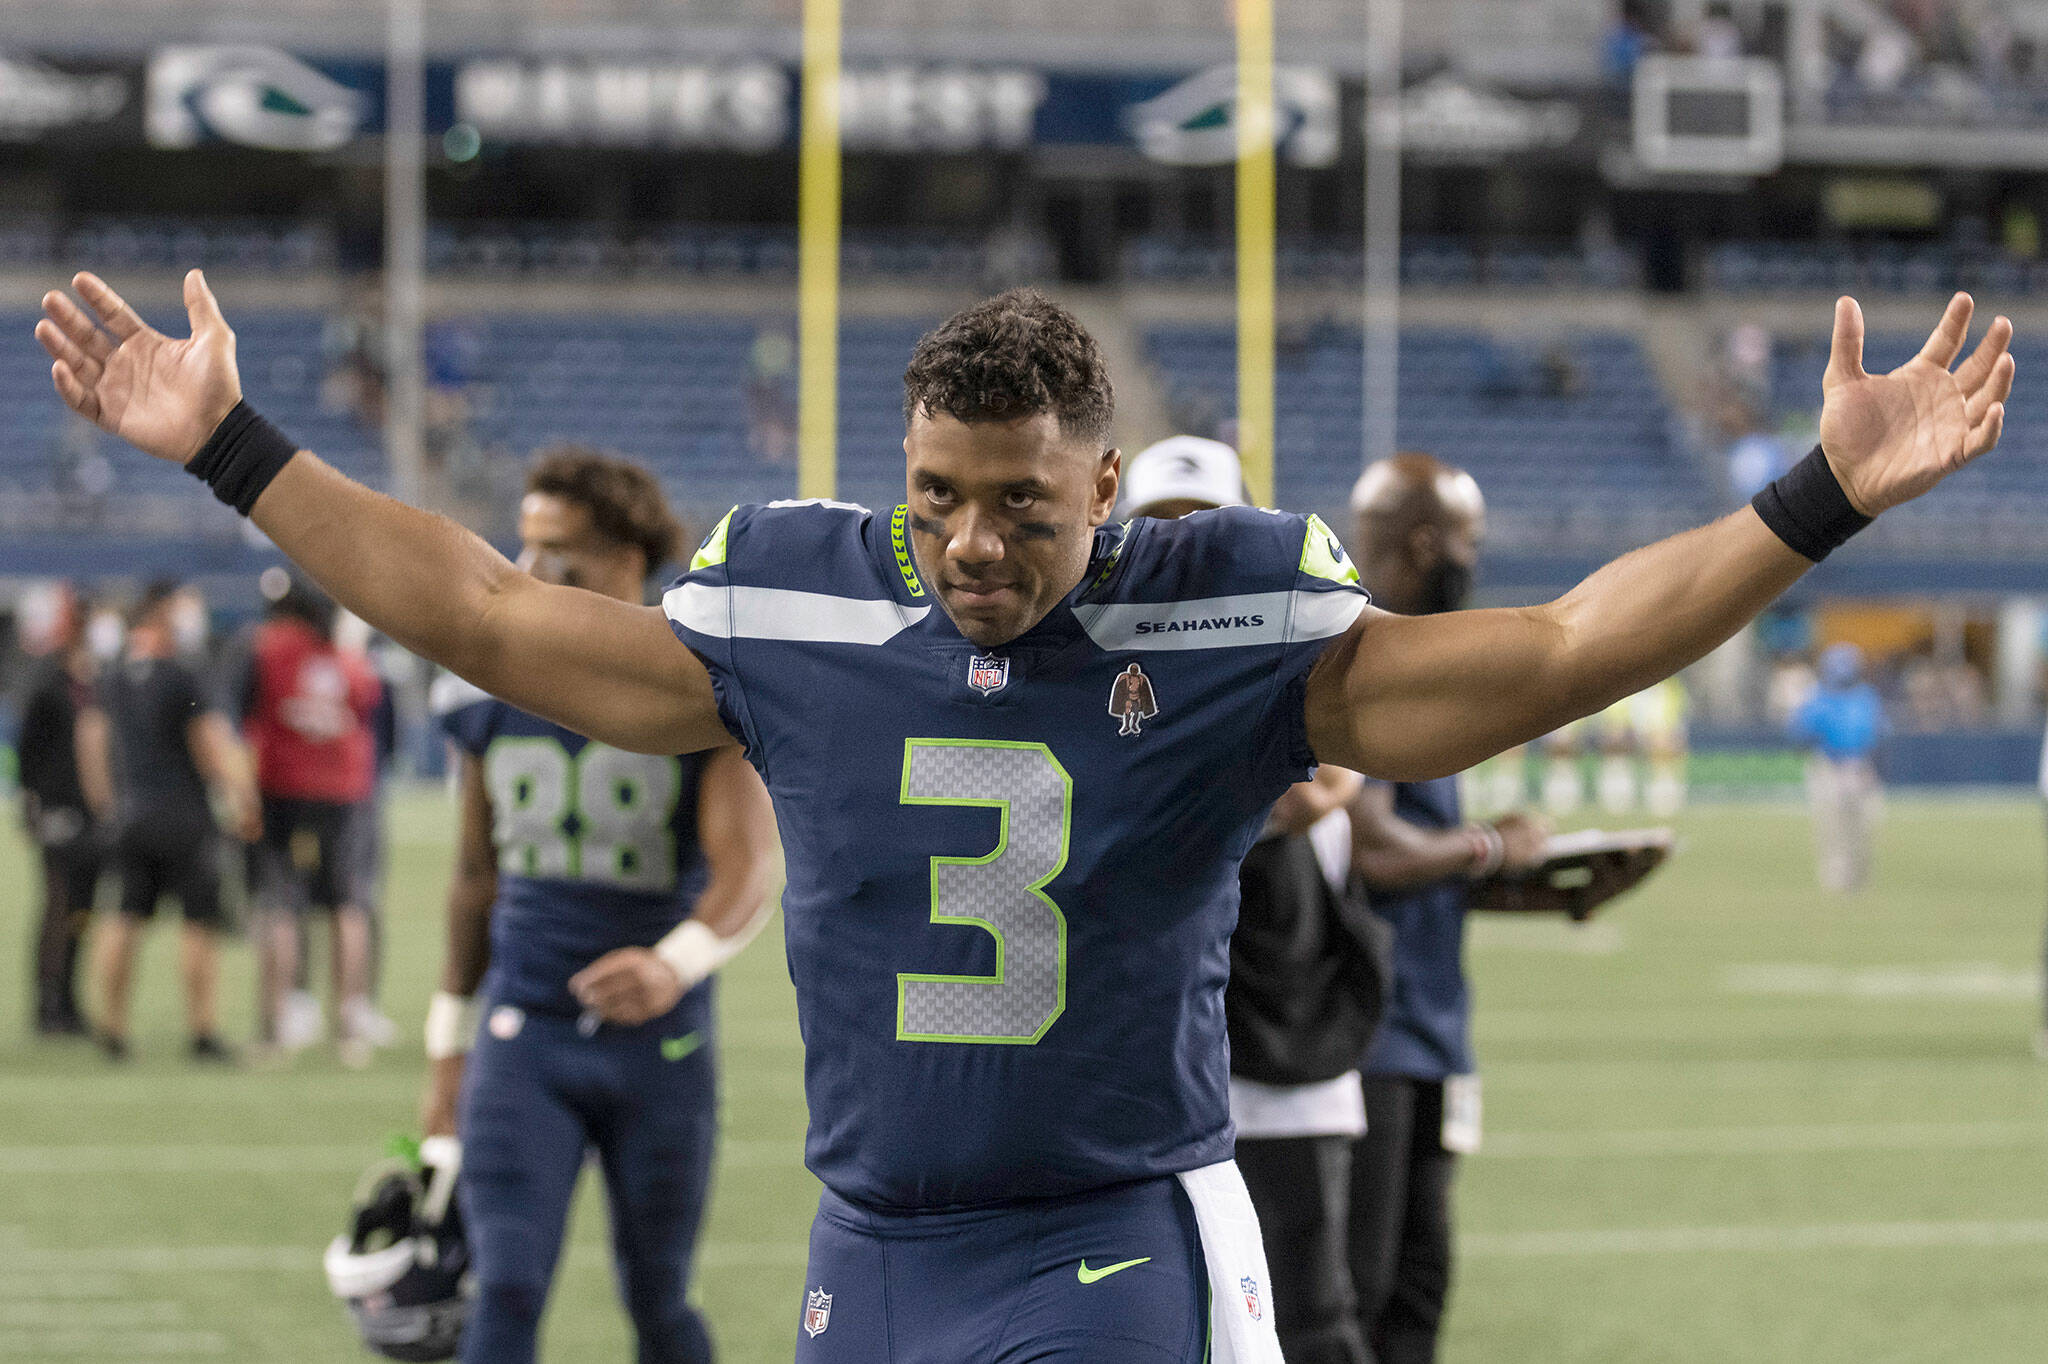 Seahawks quarterback Russell Wilson gestures as he walks off the field after a preseason game against the Chargers on Aug. 28, 2021, in Seattle. (AP Photo/Stephen Brashear)